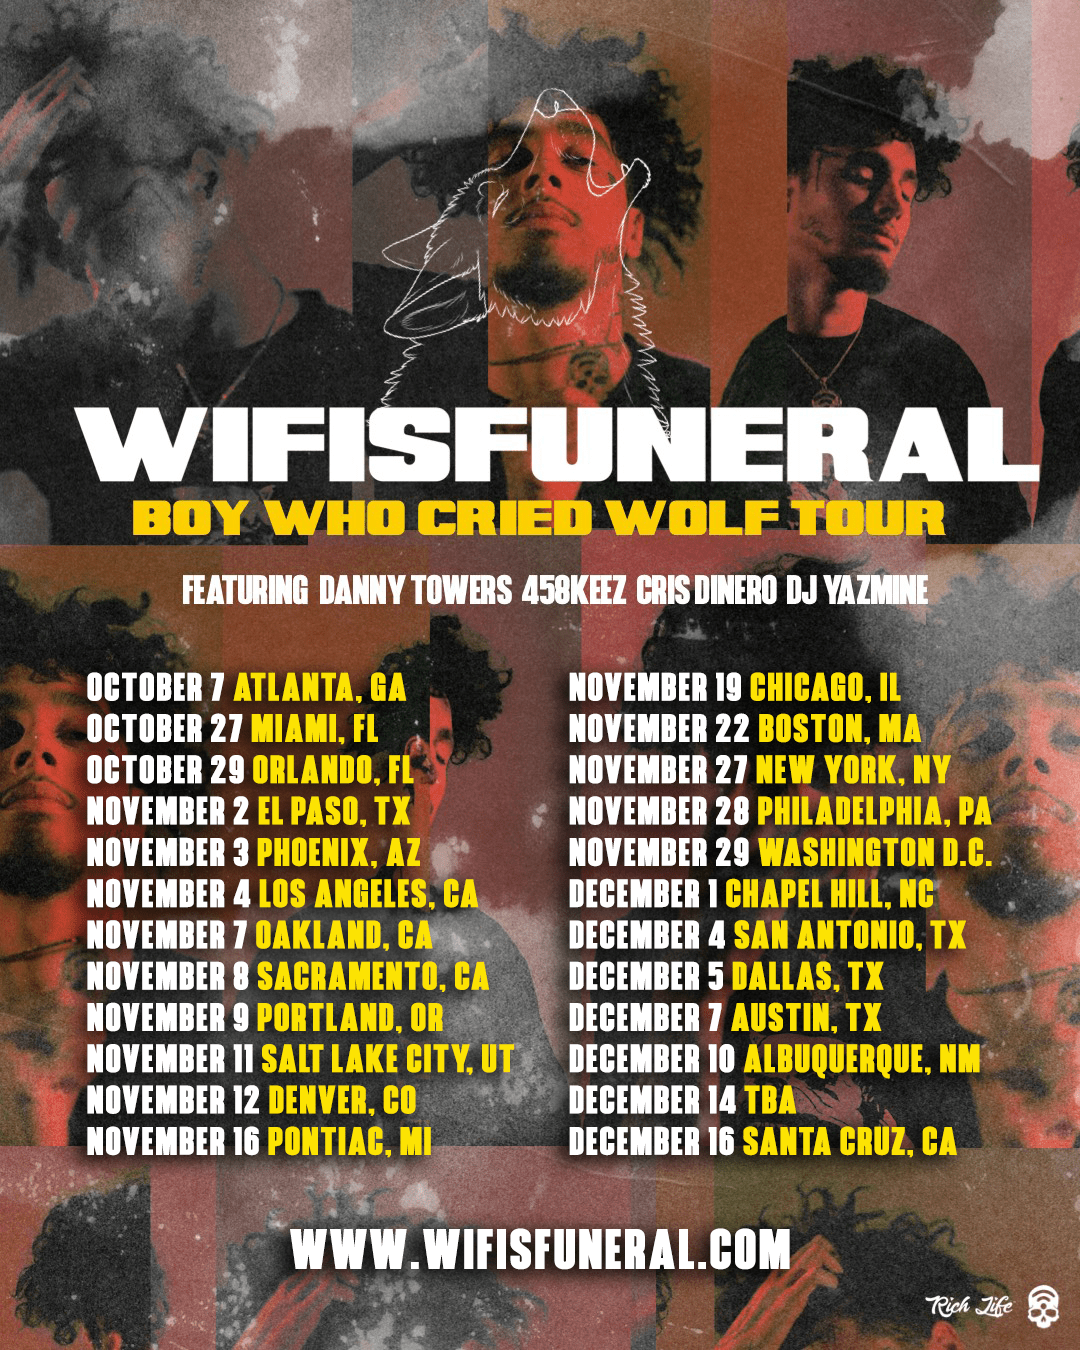 wifisfuneral Announces Boy Who Cried Wolf Tour